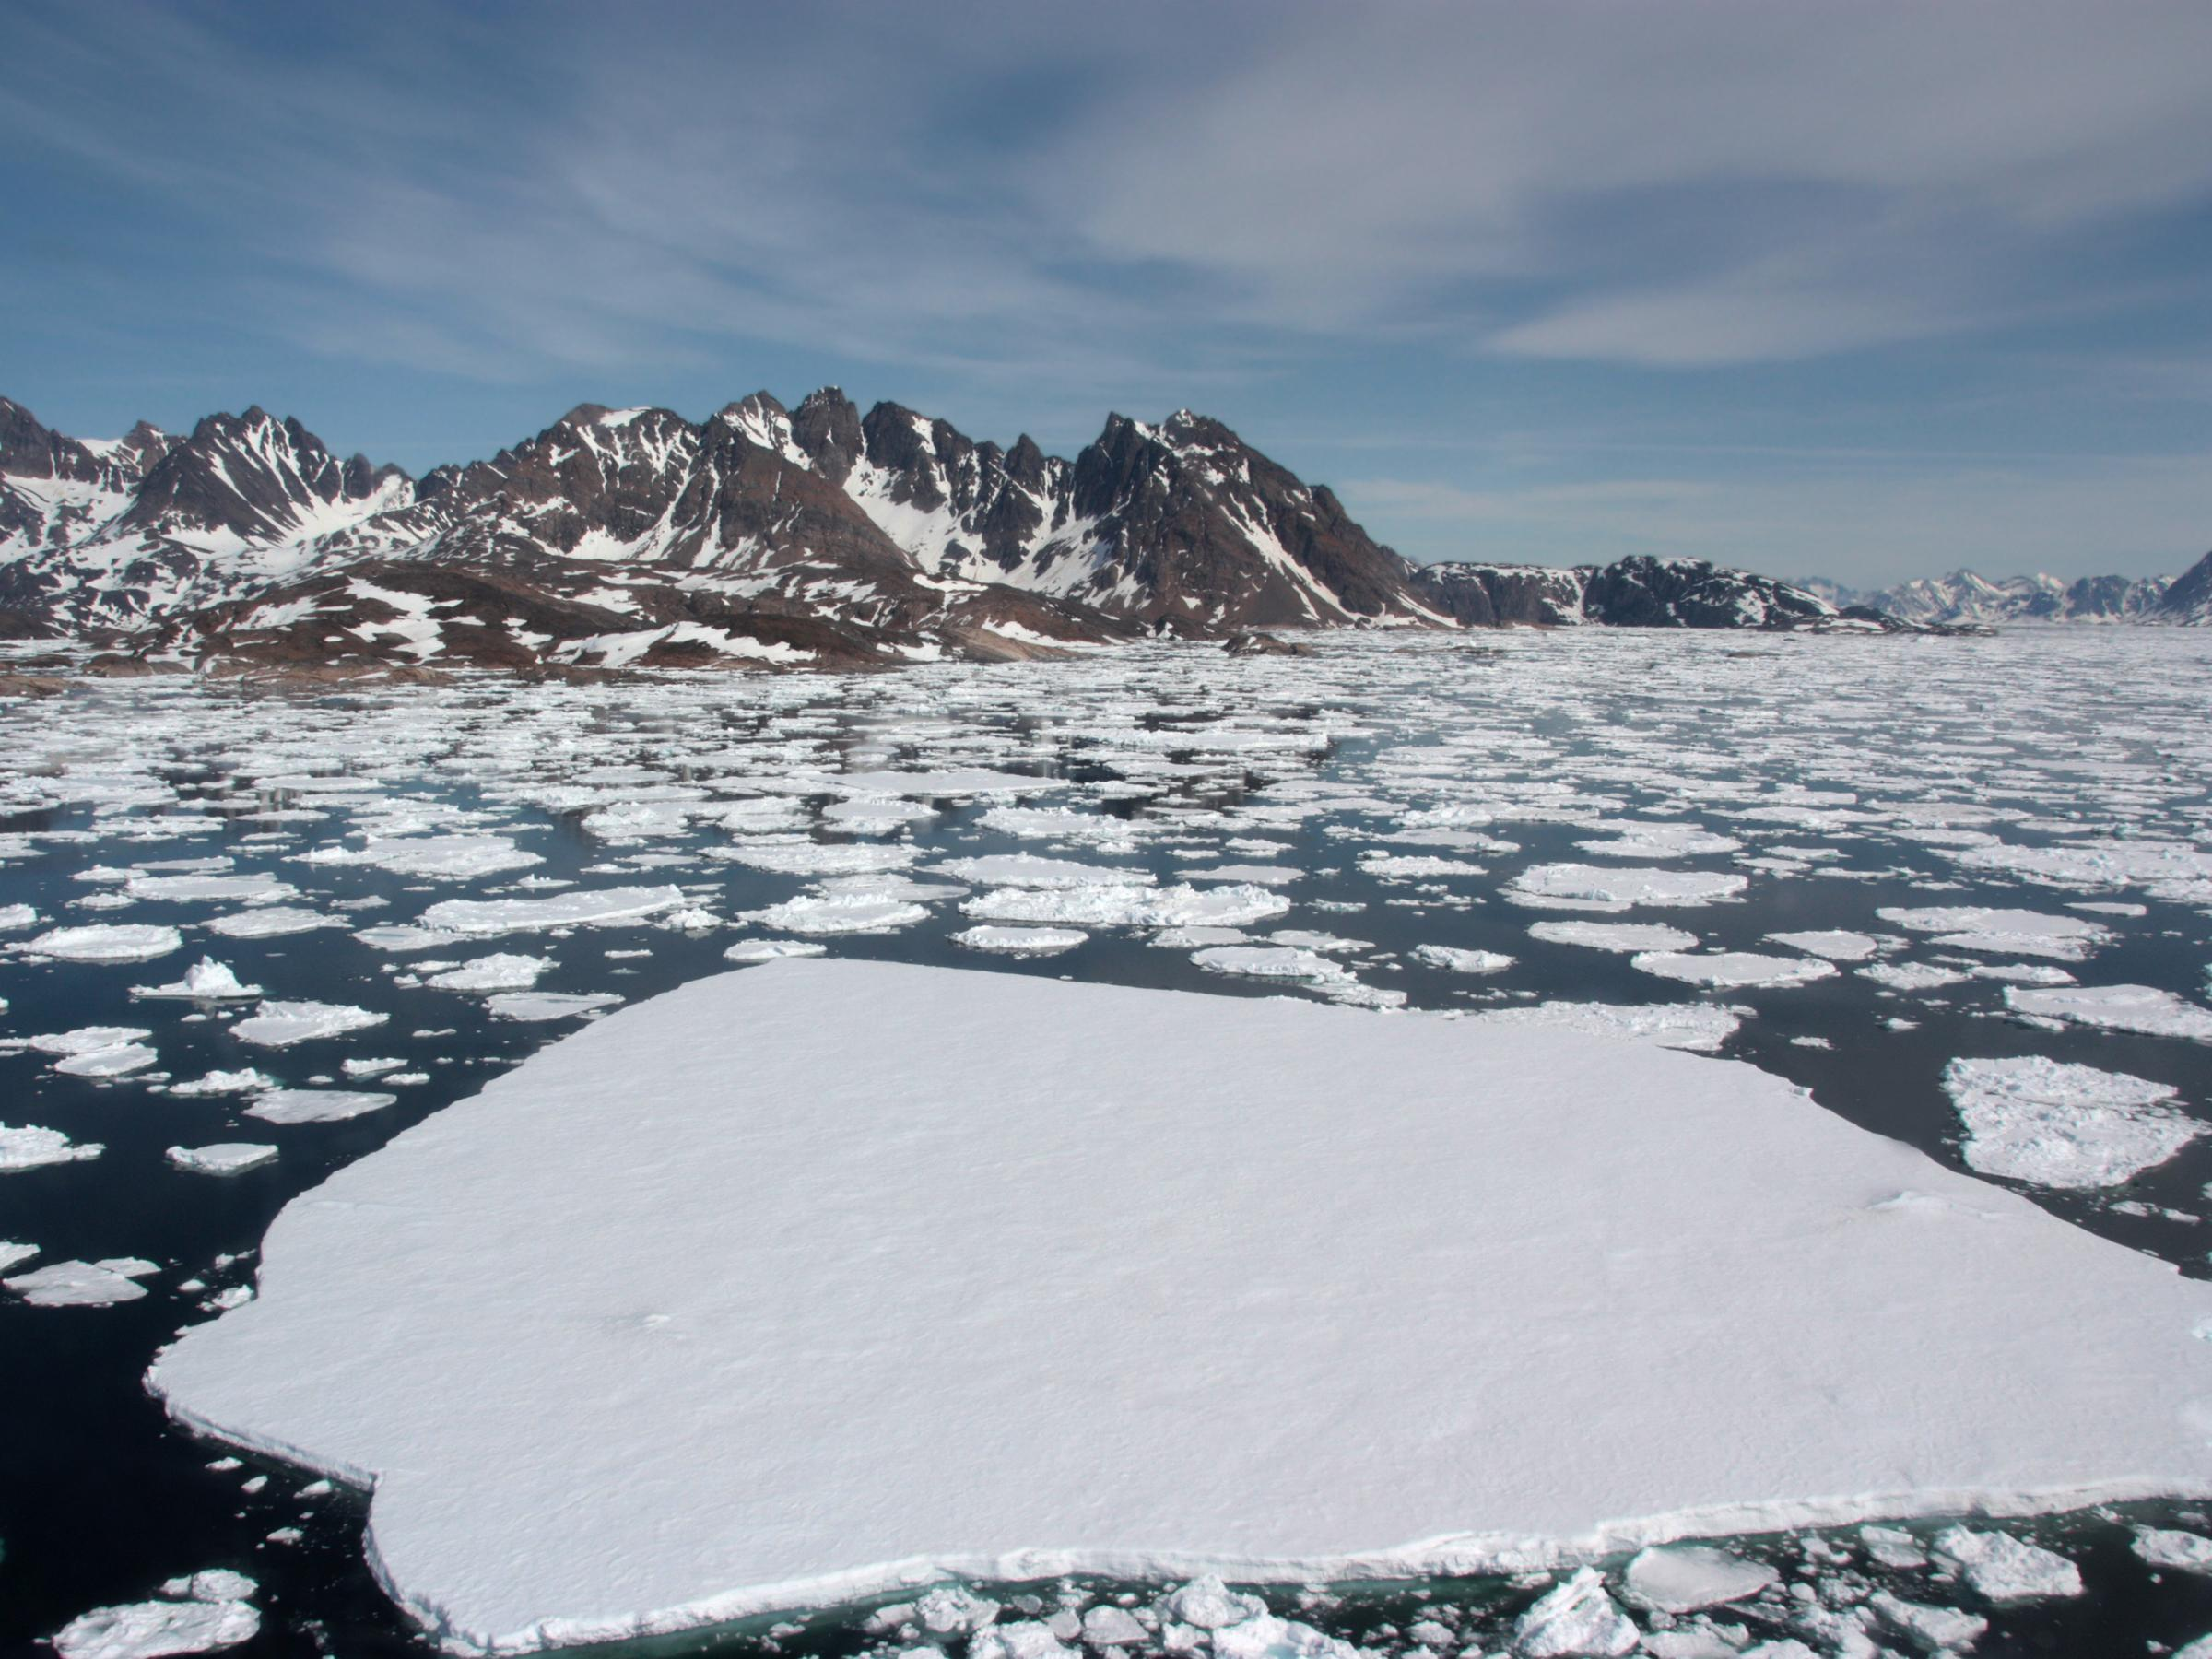 Scientists find pocket of warm water trapped under Arctic with potential to melt entire ice pack